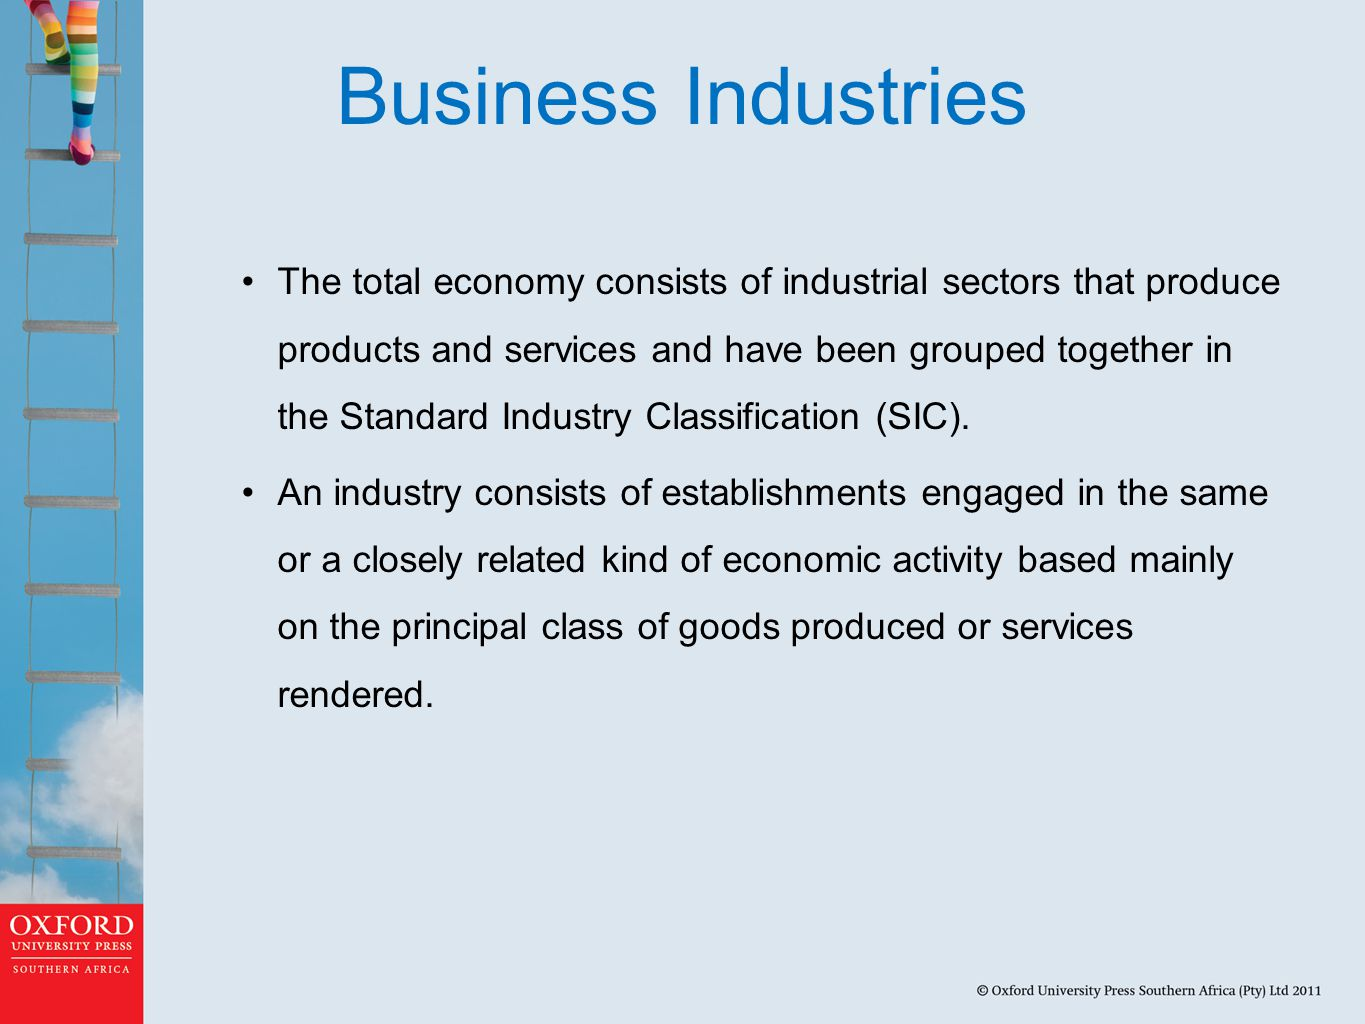 Business Industries The total economy consists of industrial sectors that produce products and services and have been grouped together in the Standard Industry Classification (SIC).